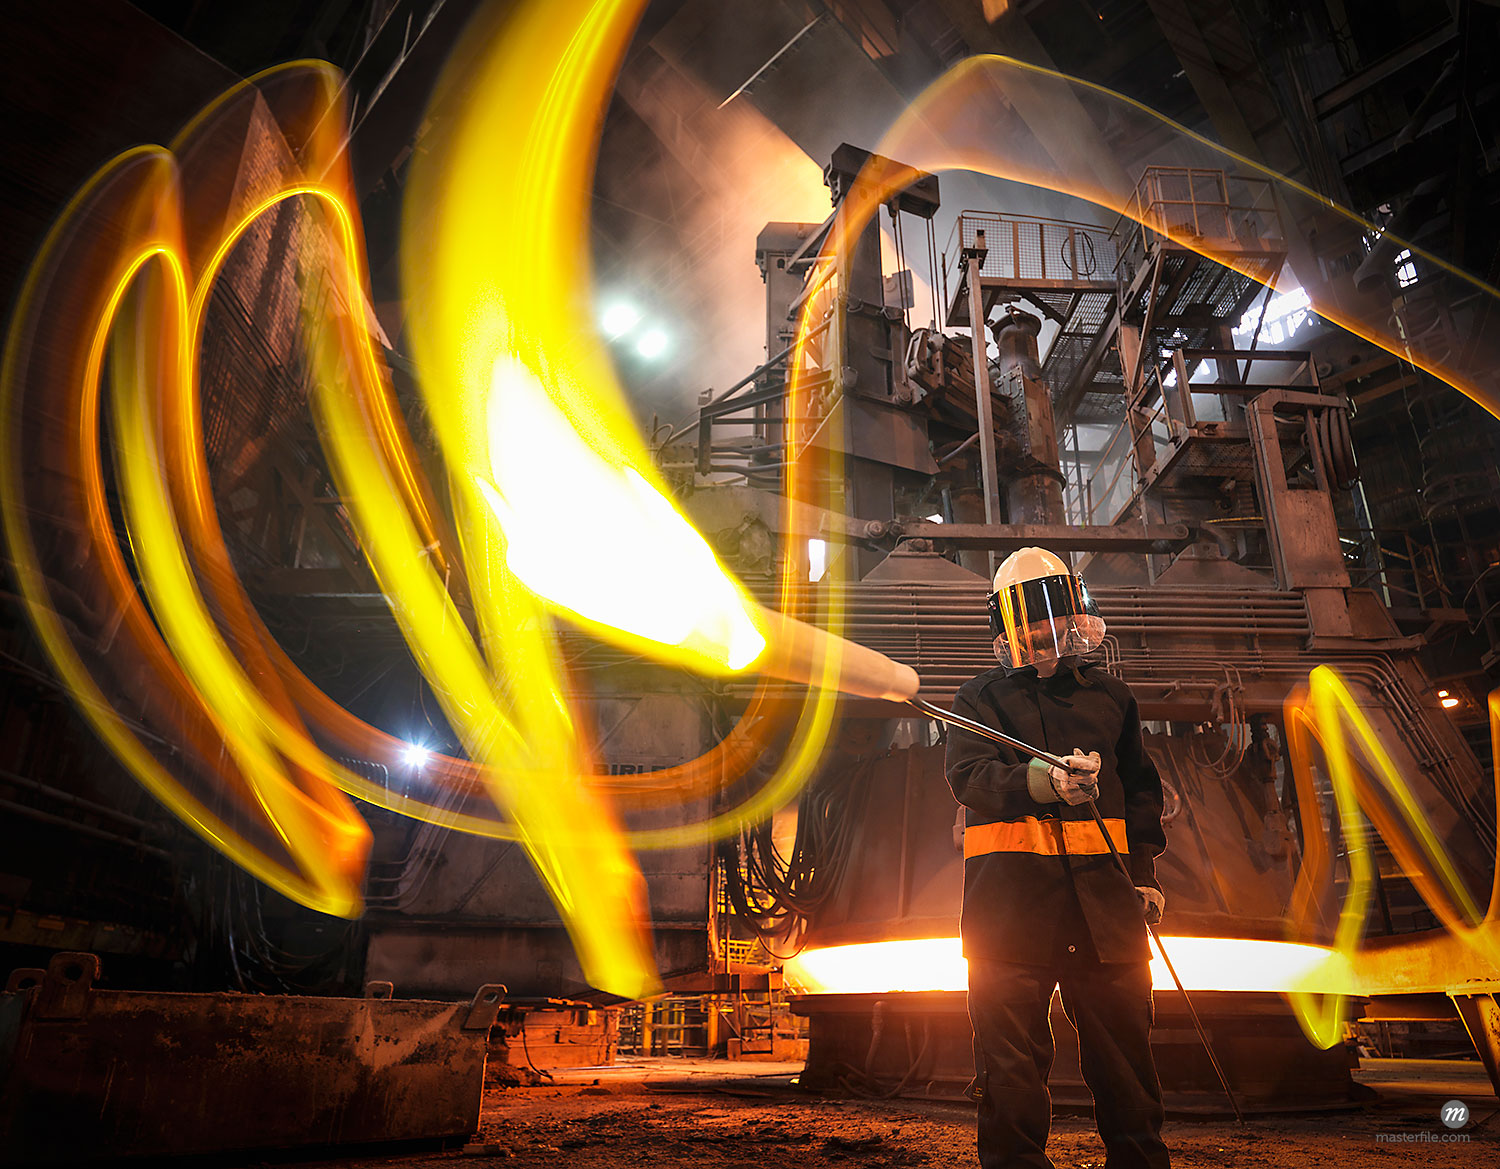 Steelworker with molten metal sample taken from furnace  © Masterfile